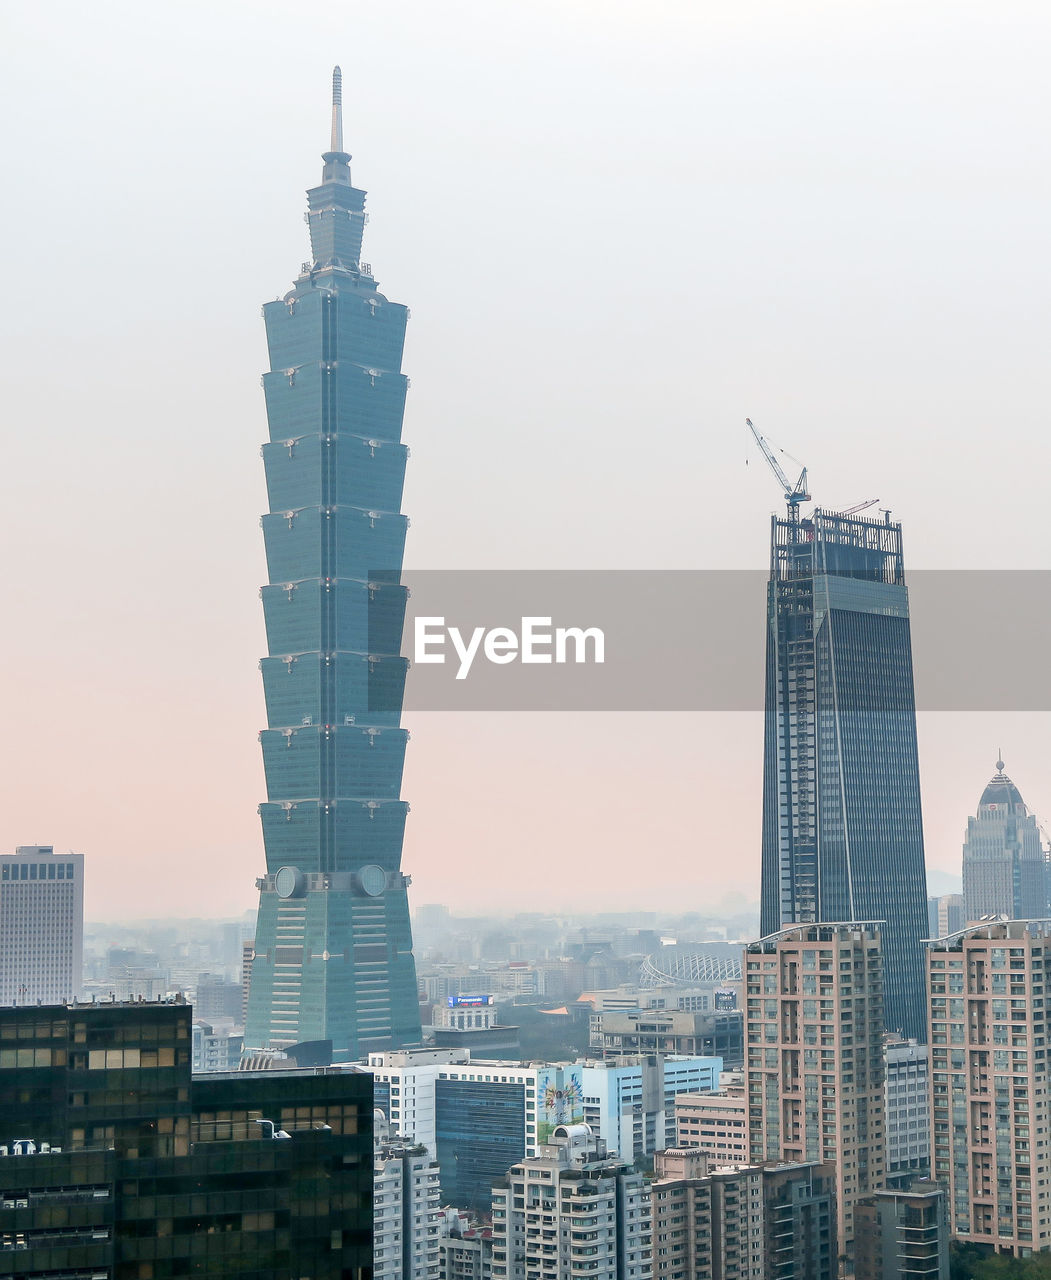 architecture, skyscraper, city, building exterior, tower, built structure, tall - high, modern, cityscape, no people, travel destinations, tall, urban skyline, downtown district, outdoors, sky, day